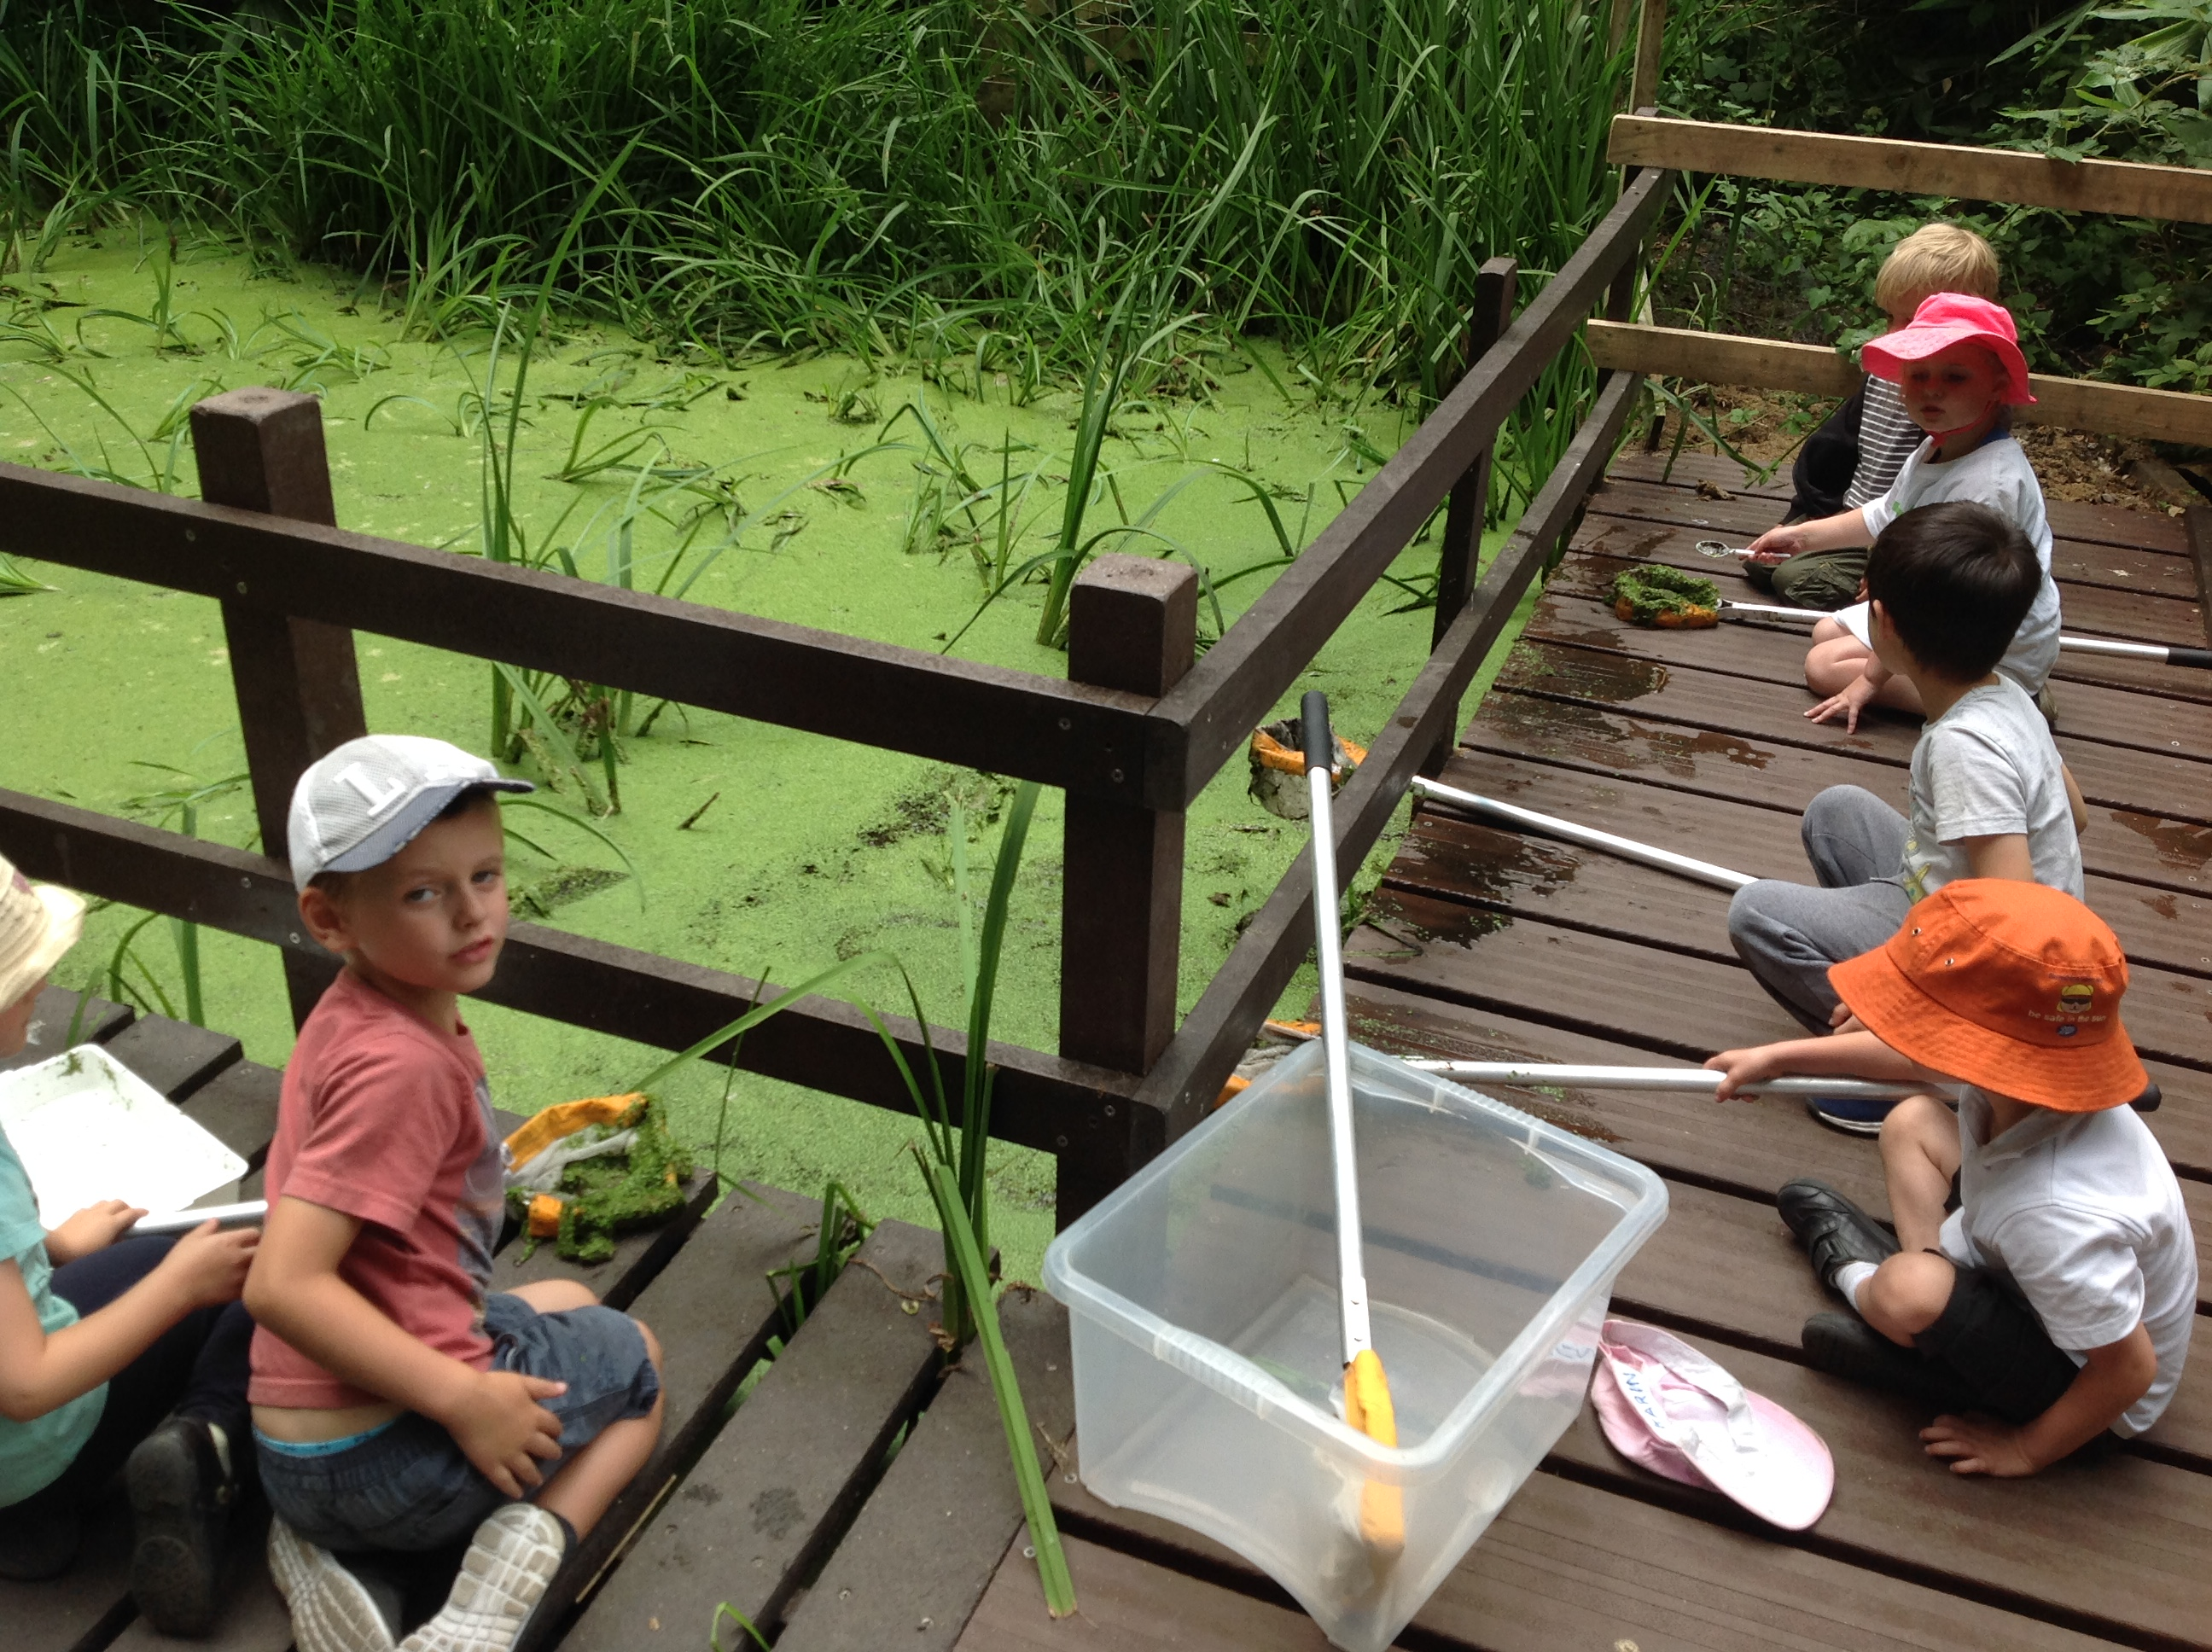 RX pond dipping